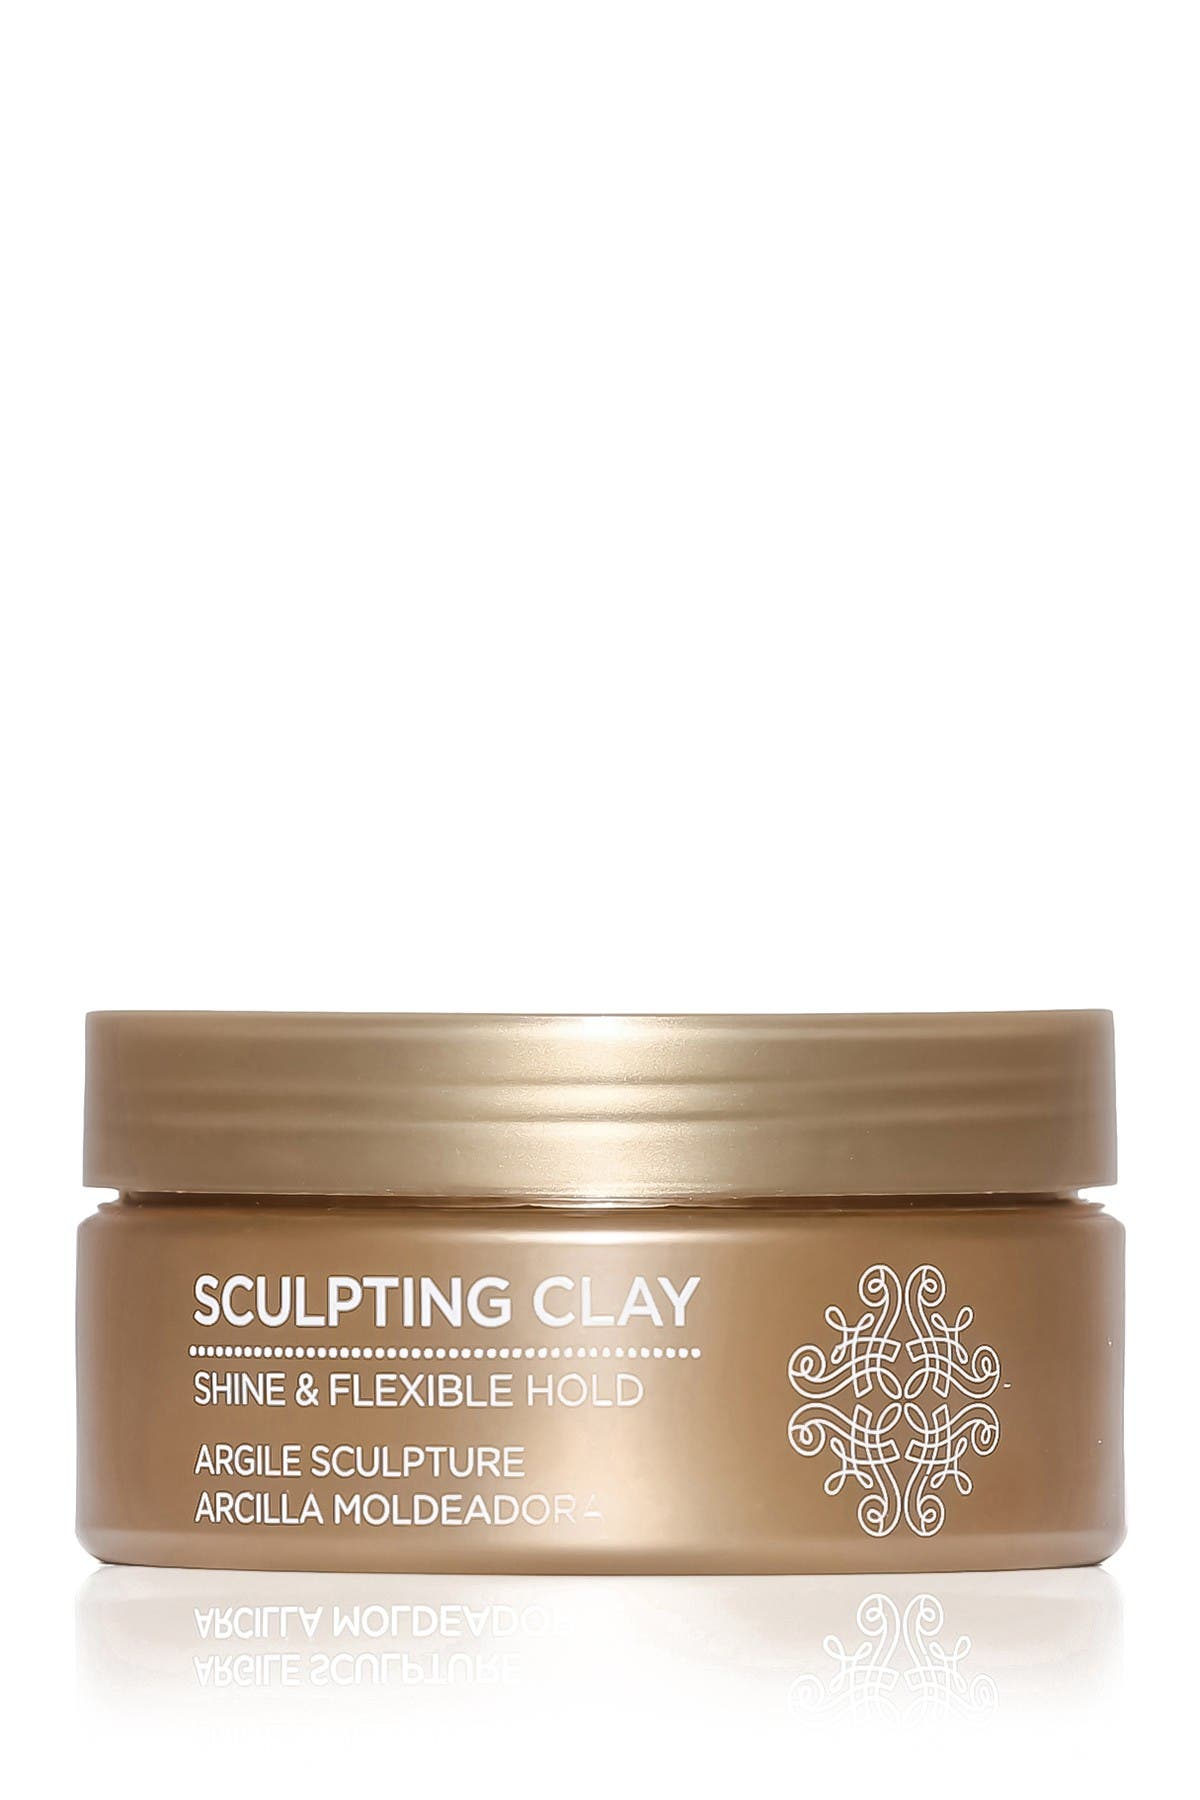 Image of Luseta Beauty Sculpting Clay - 1.69 oz.